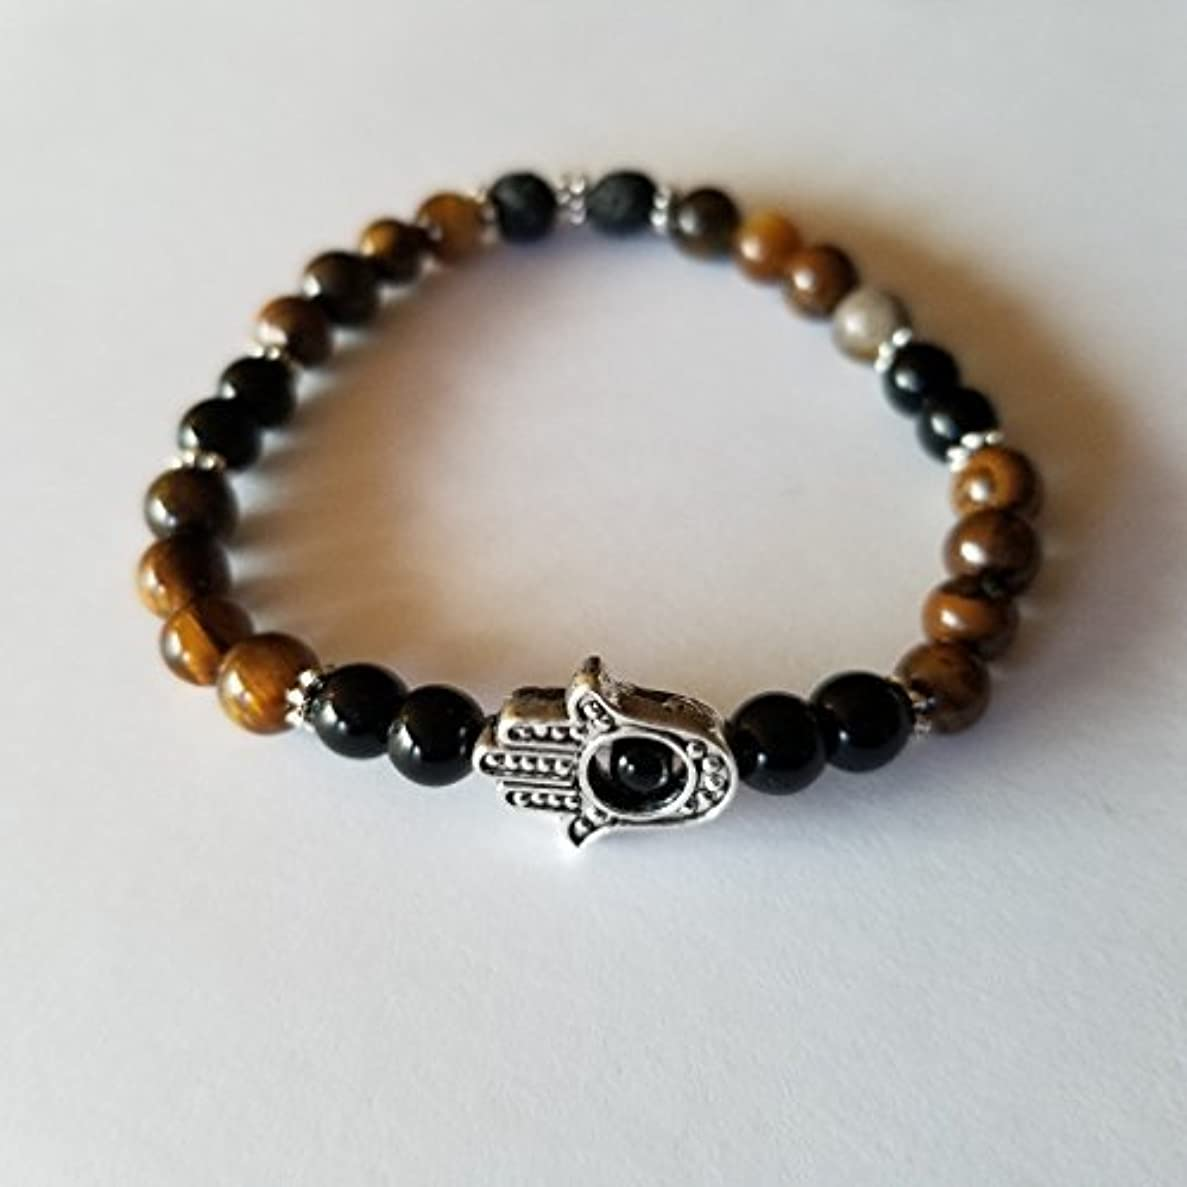 マスクホバートシーサイドHandmade Tiger's Eye Black Jasper and Black Lava Essential Oil Diffuser Bracelet featuring Hamsa Hand - 7 [並行輸入品]